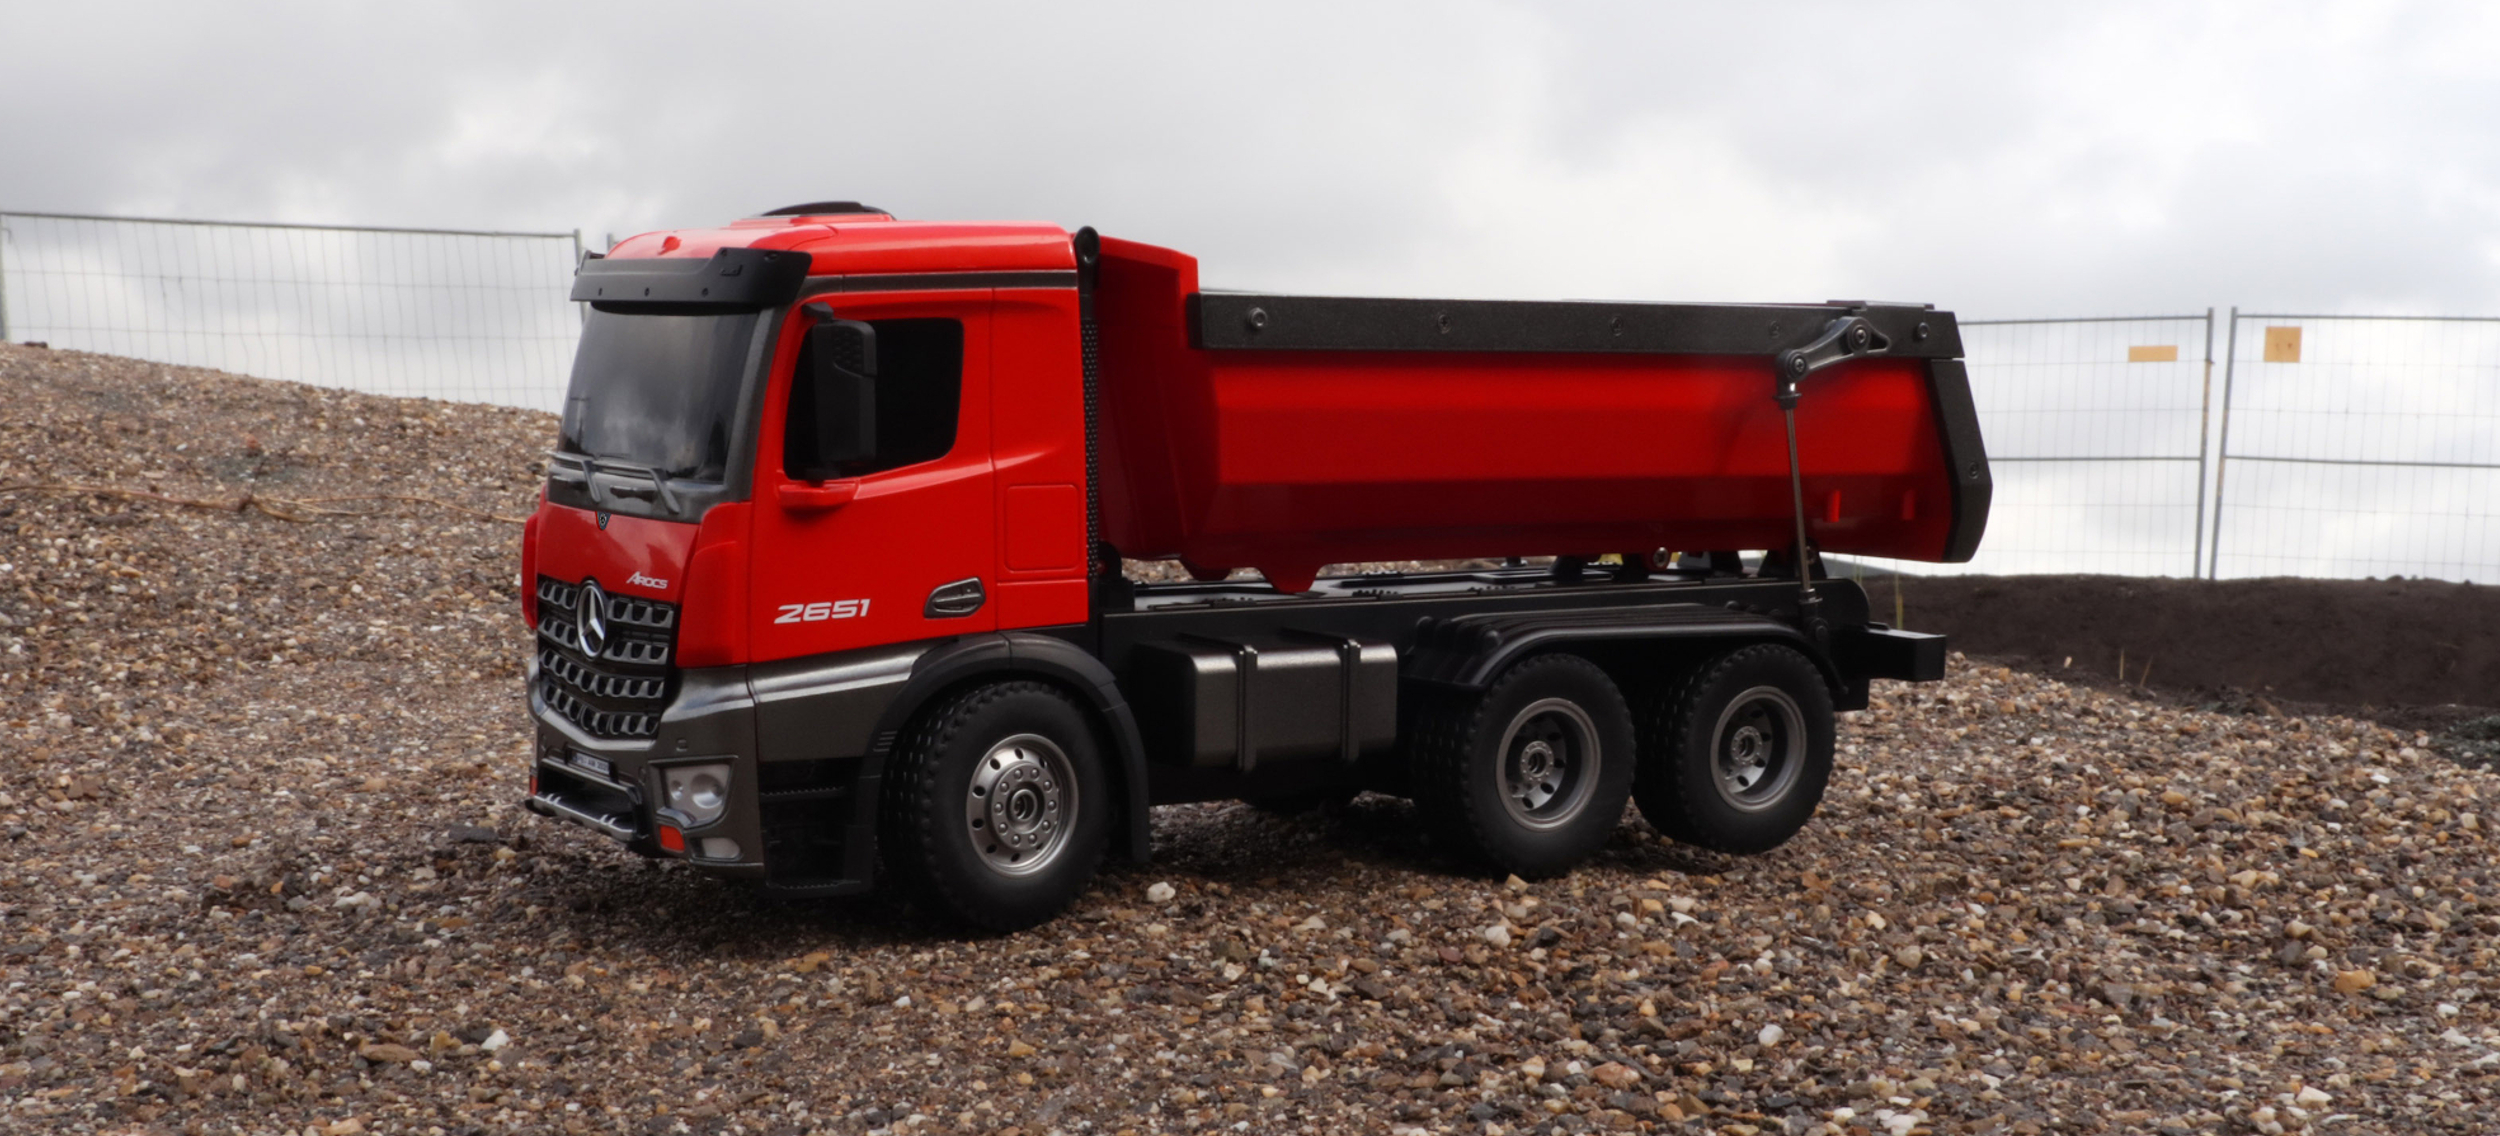 Mercedes-Benz Arocs LKW Kipper - 22407